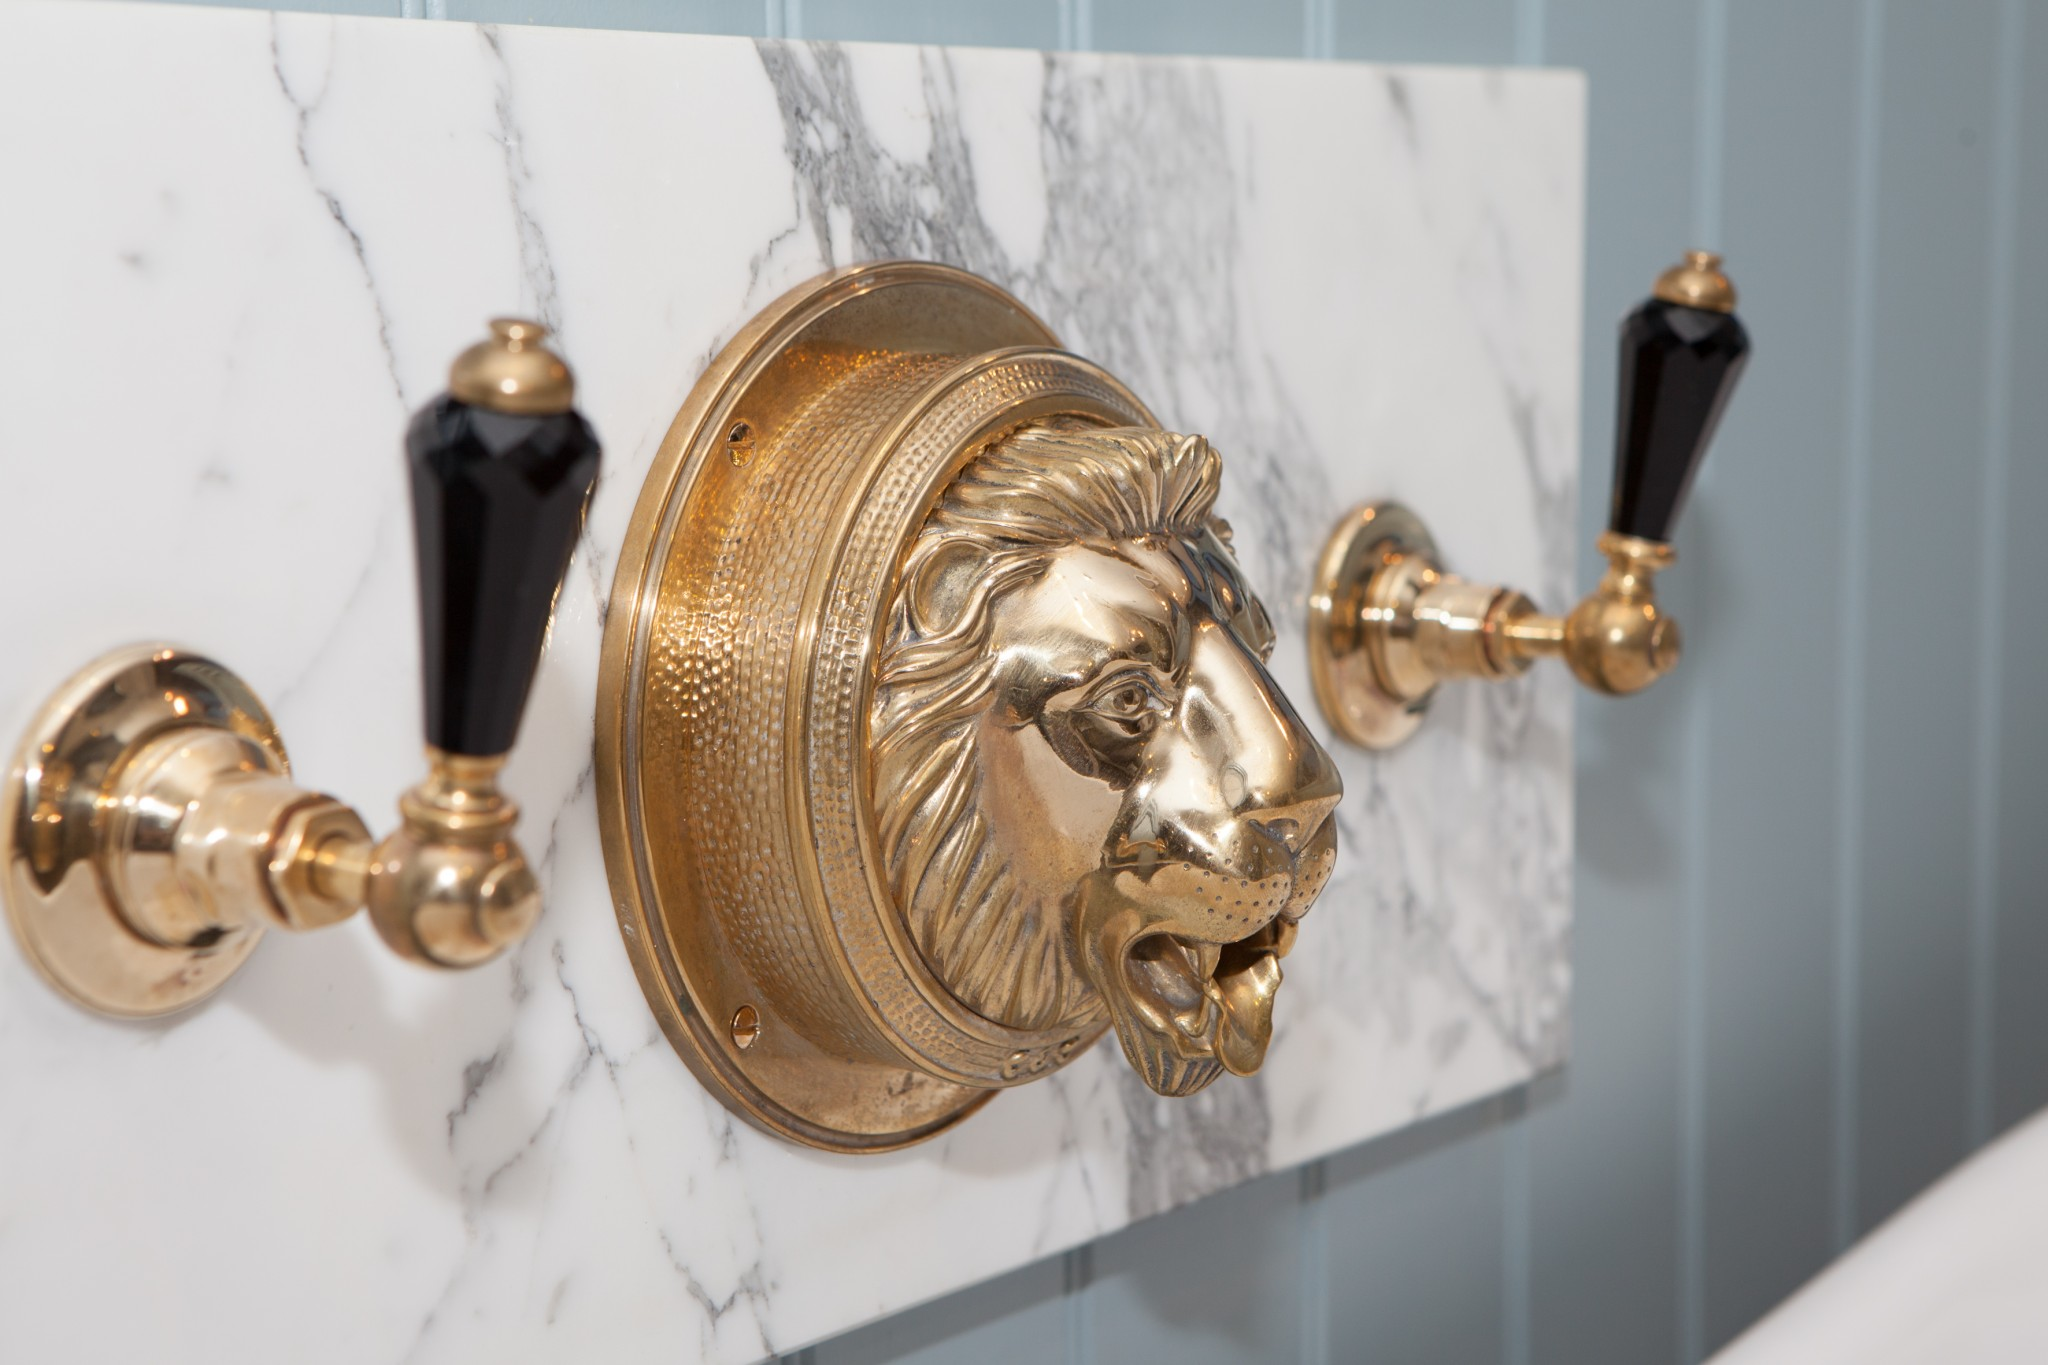 gold bathroom taps uk brightpulse us gold taps and bespoke finishes for the bathrooms hansgrohe uk